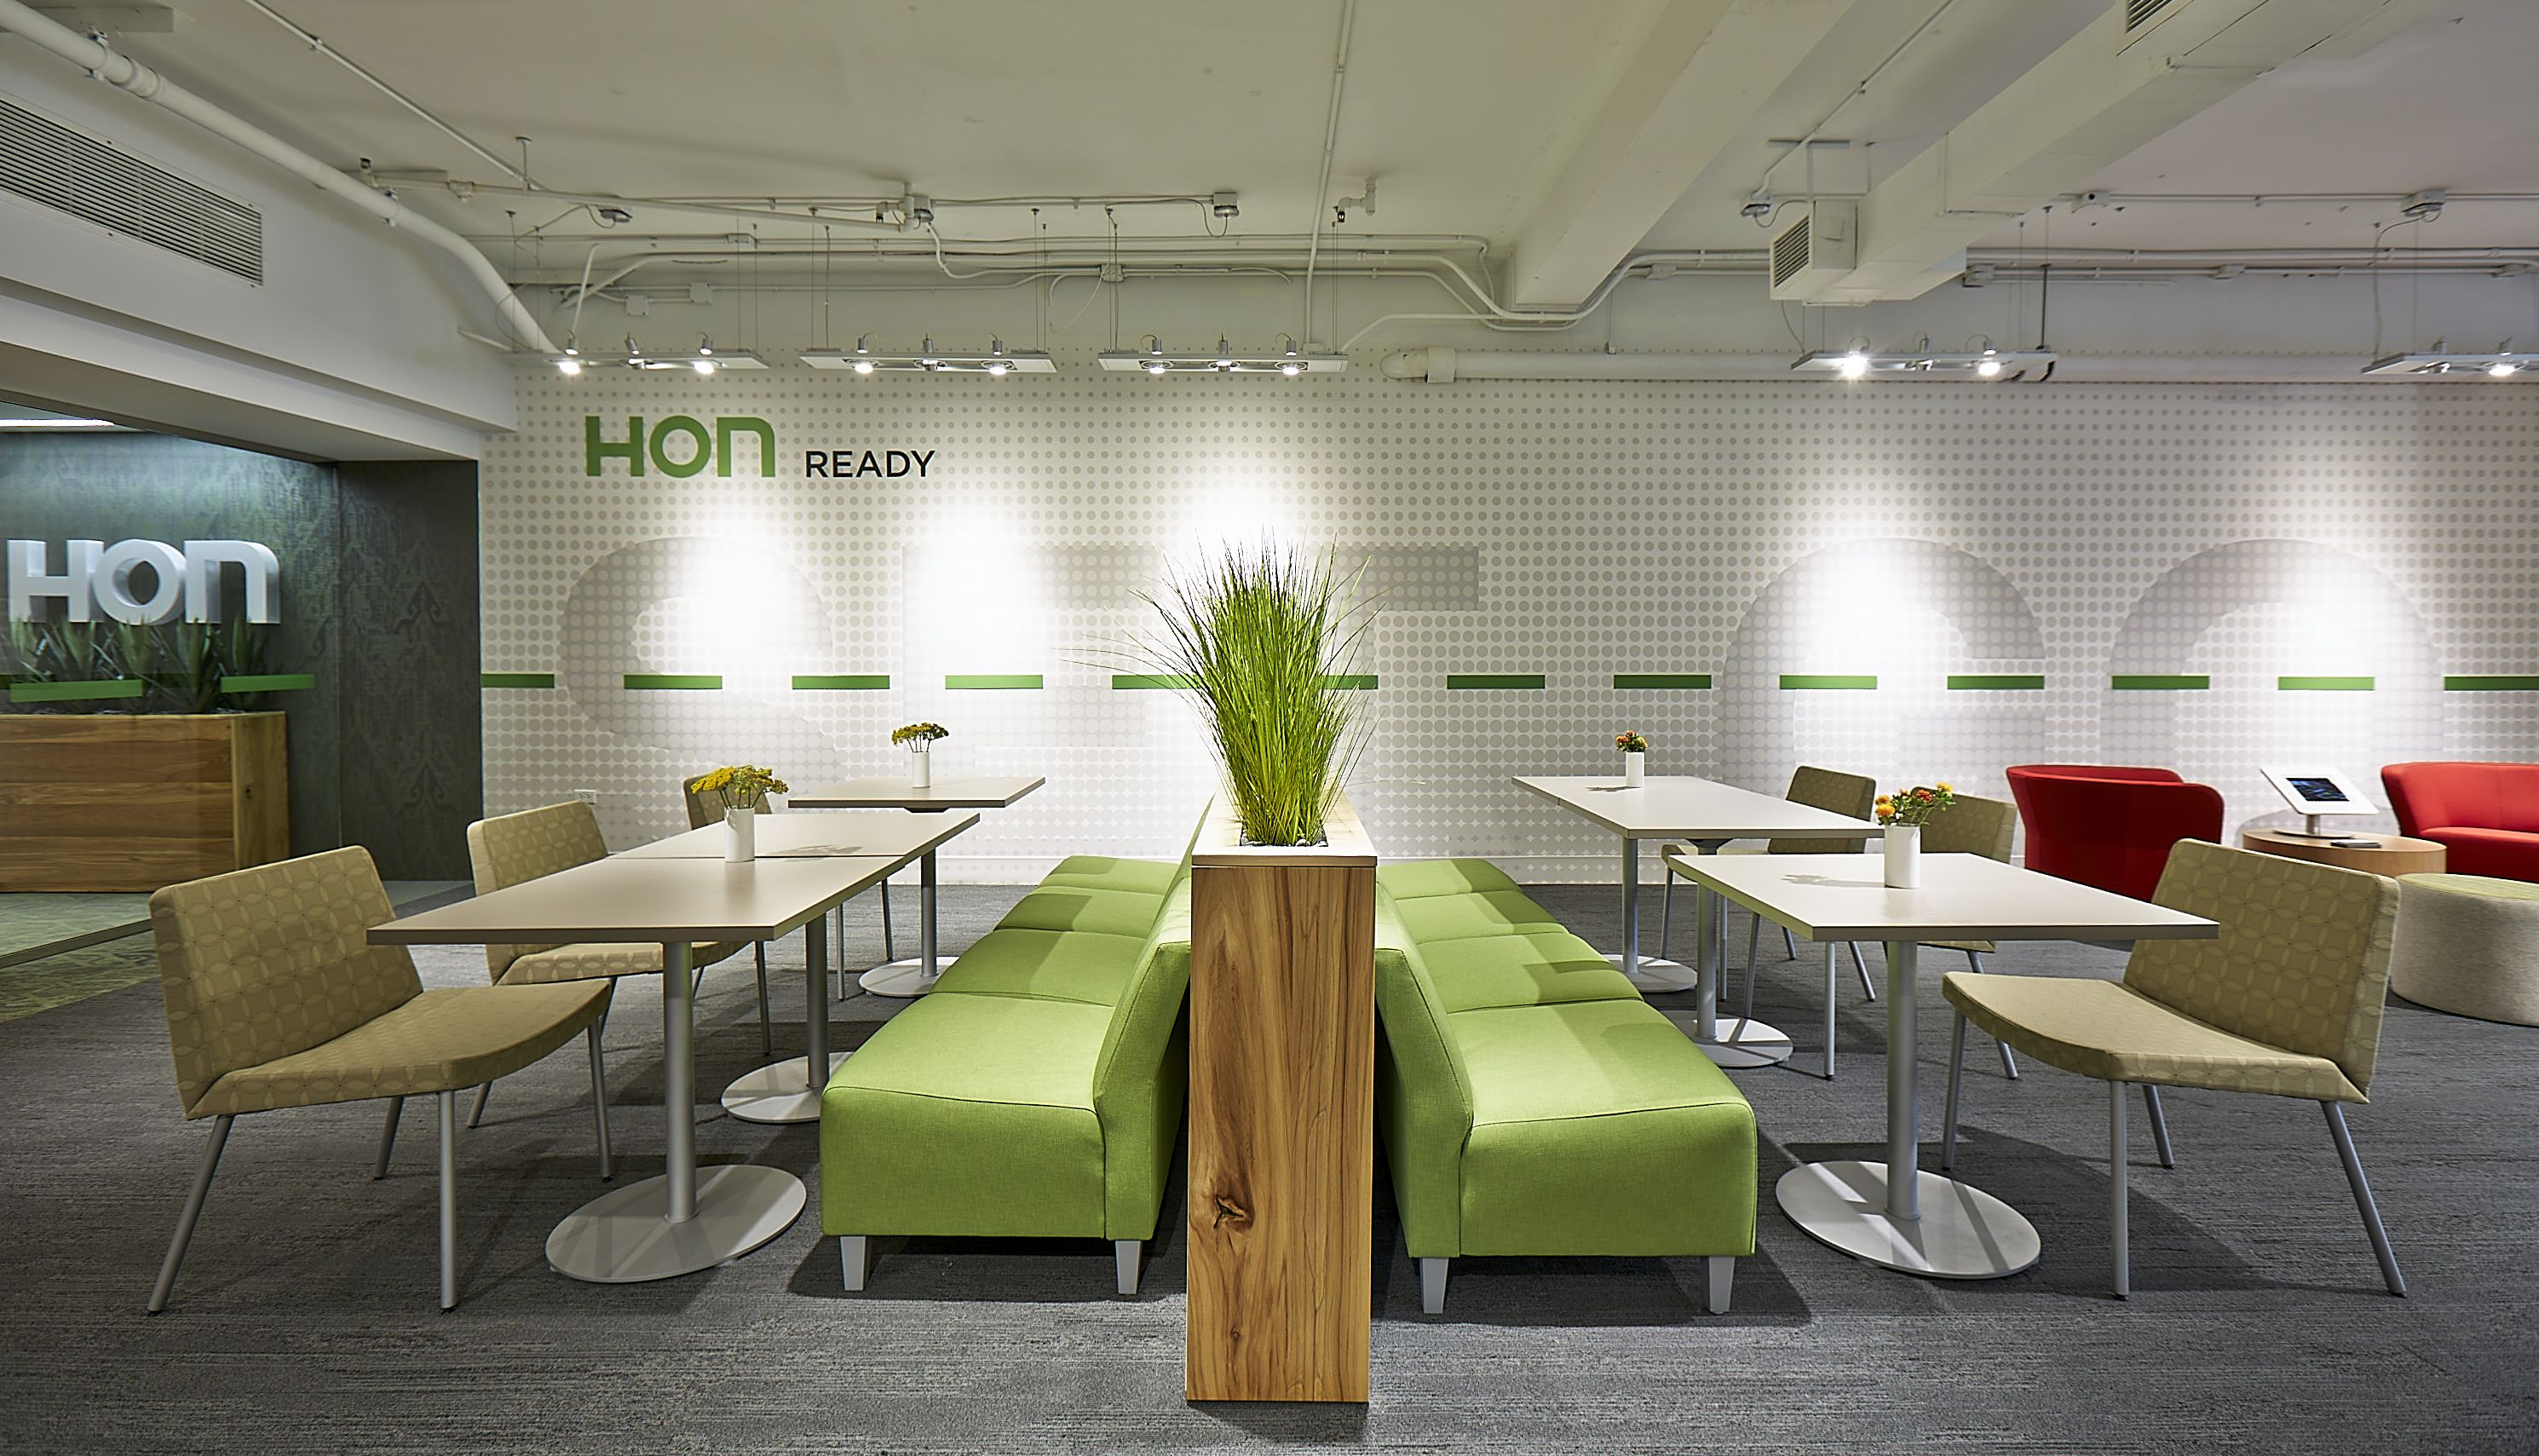 hon neocon 2014 showroom suite #1130, merchandise mart, chicago